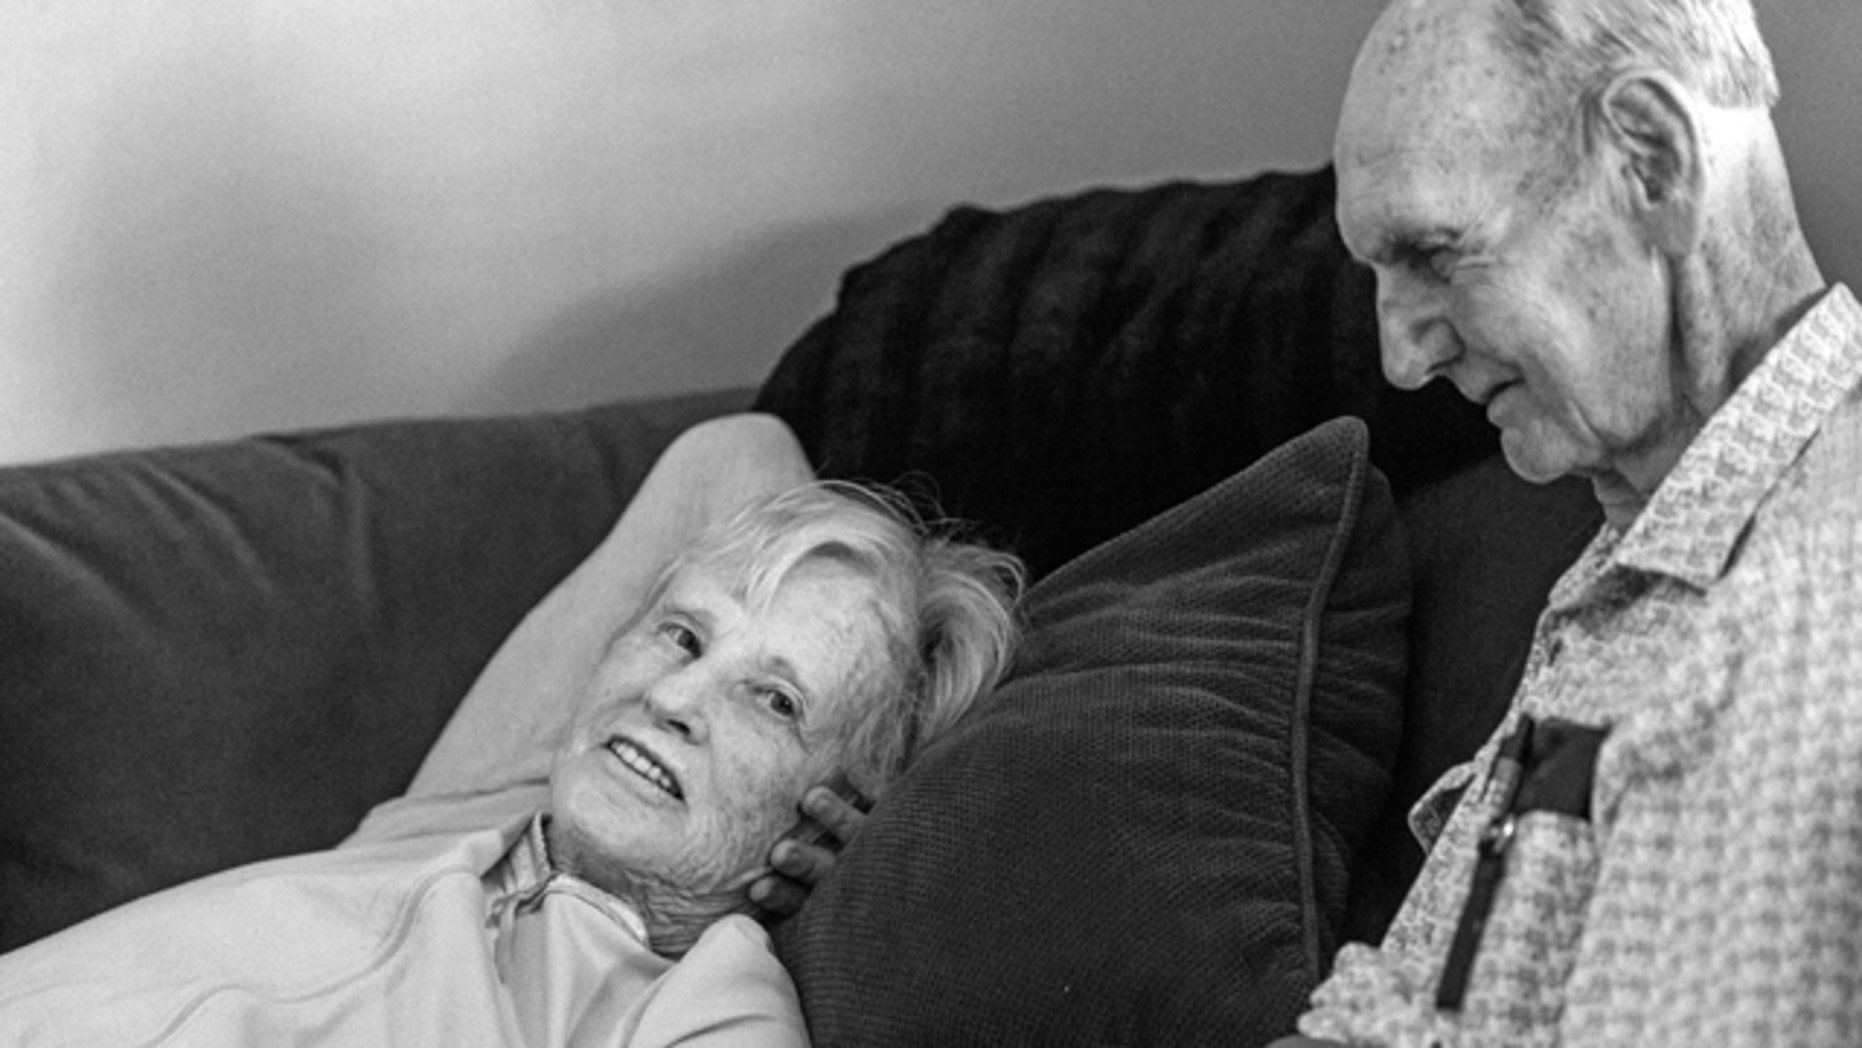 In this July, 2014 photo provided by their granddaughter Melissa Stone, Don Simpson, 90, and his wife Maxine, 87, share time together in Sloan's home in Bakersfield, Calif. The couple, married 62 years, died four hours apart July 21, 2014, while lying next to each other, their family said. (AP Photo/Melissa Sloan)